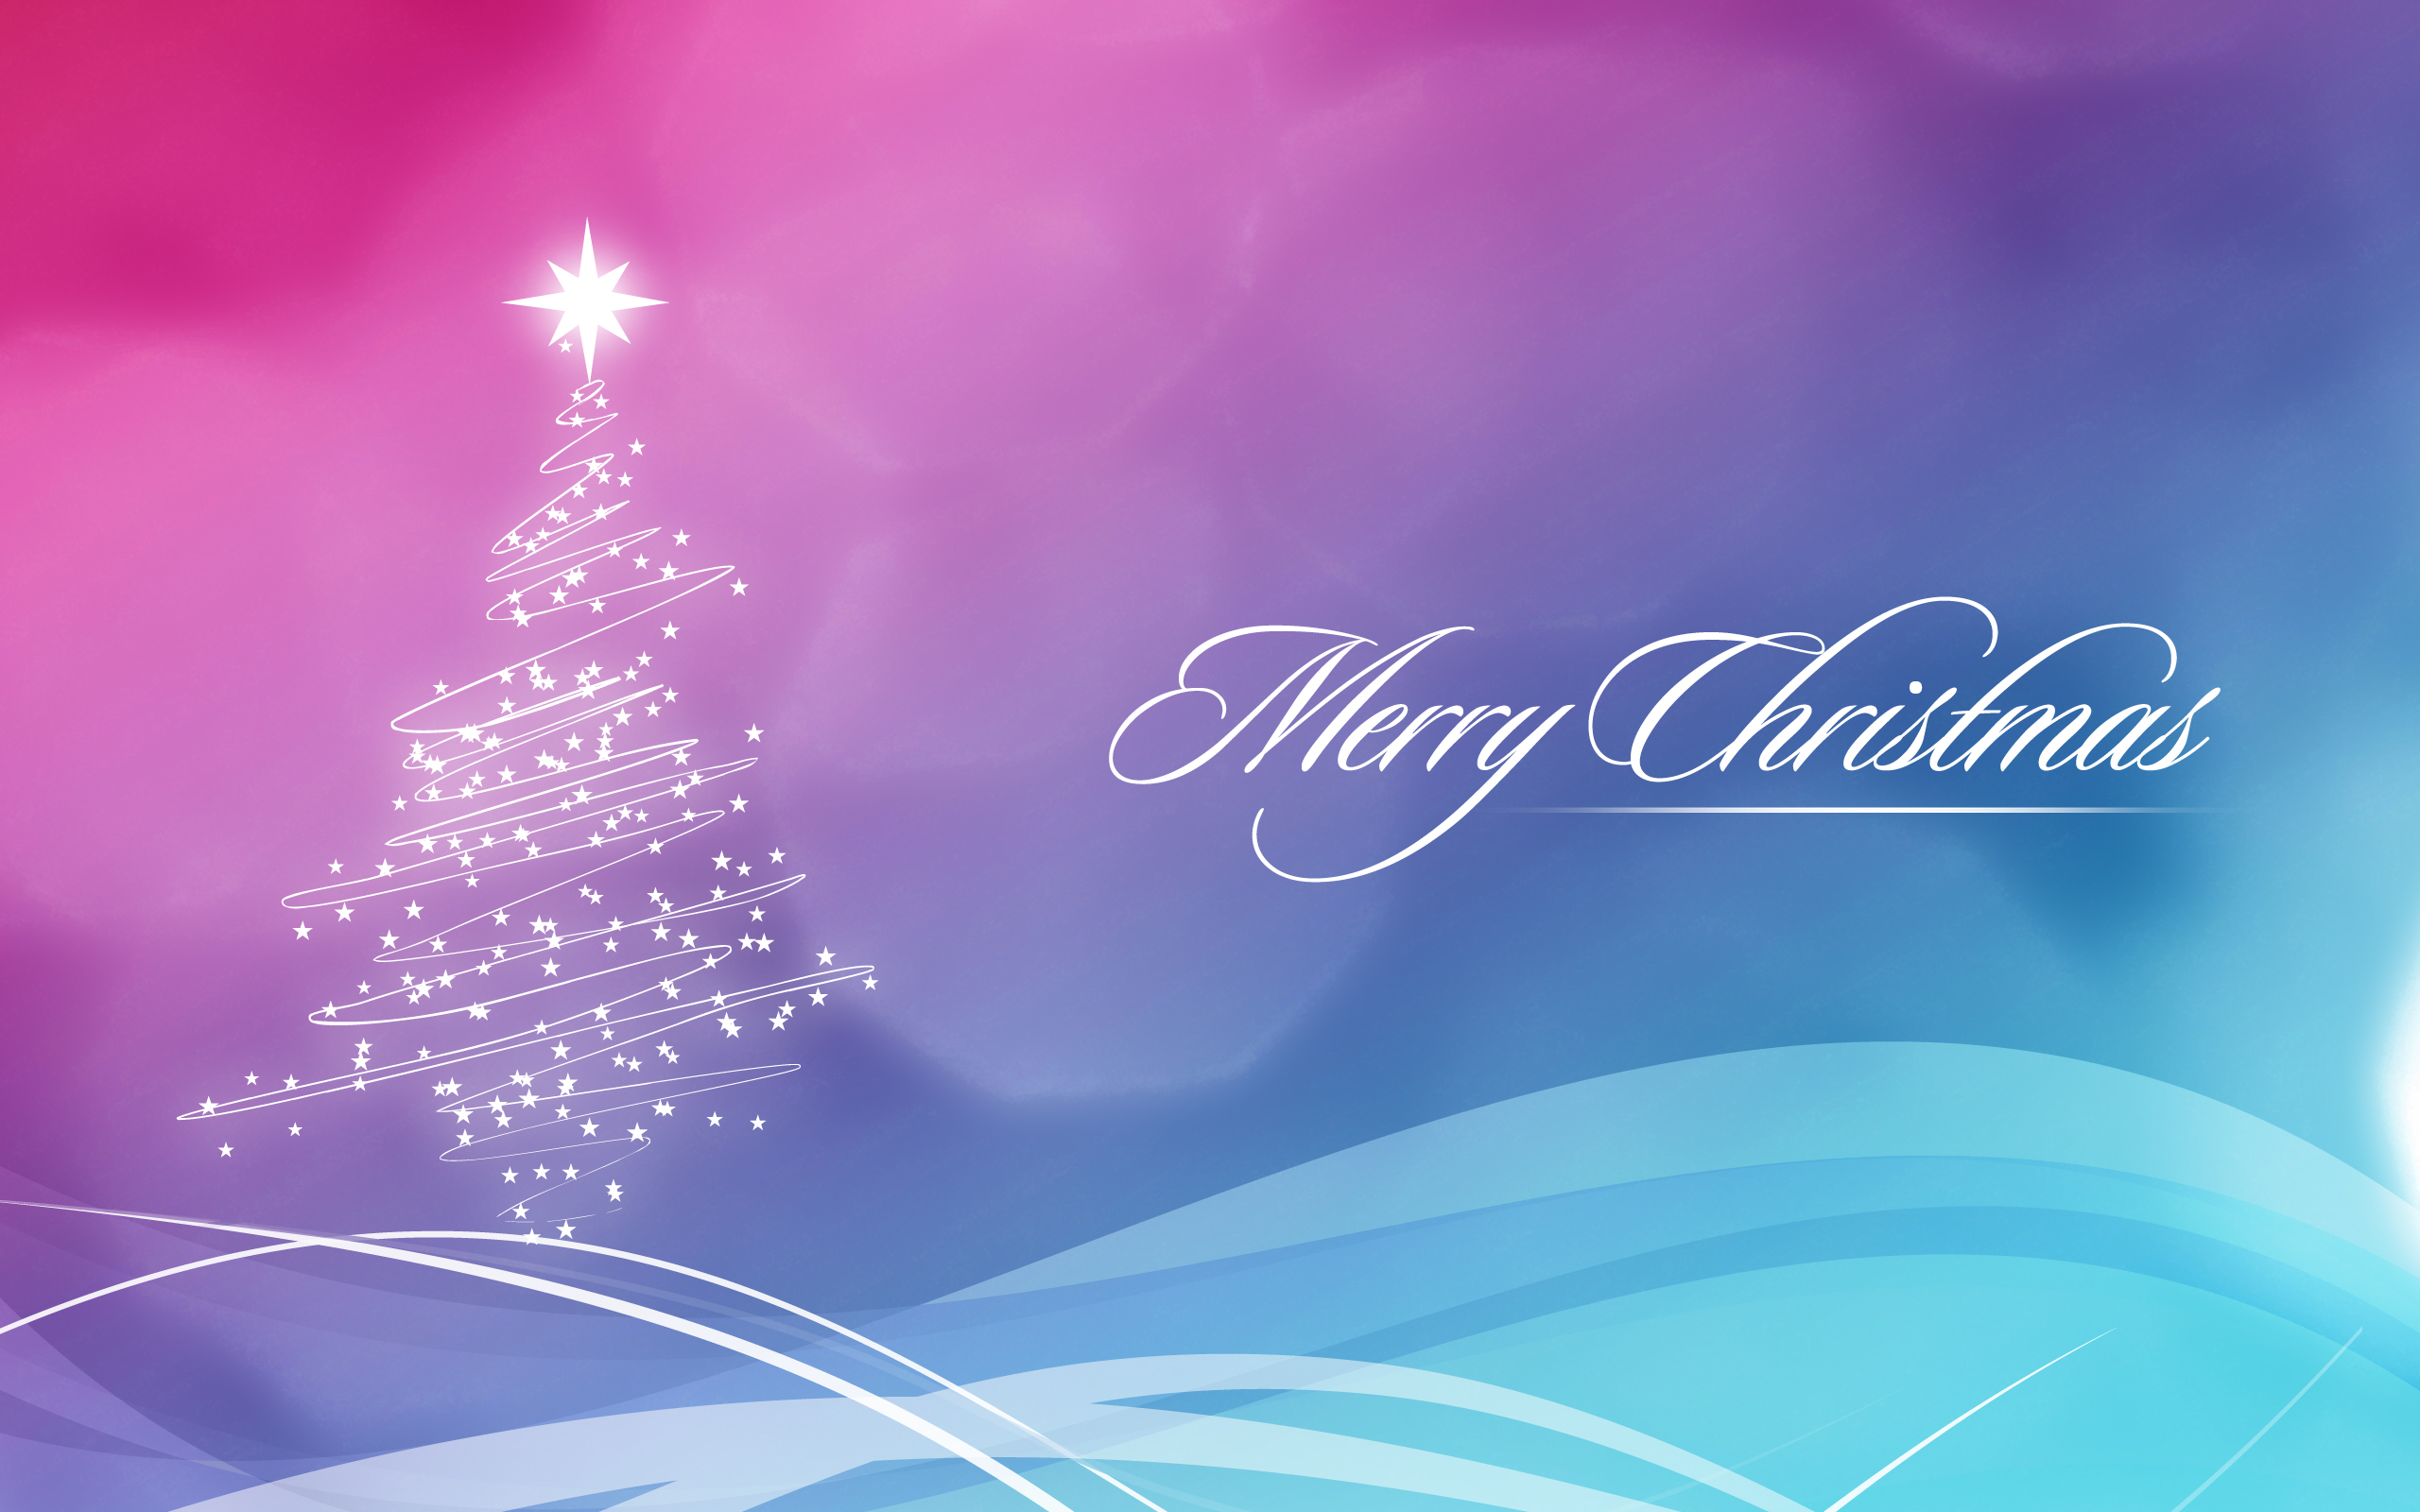 Blue and Pink Christmas Wallpaper wallpapers | Blue and Pink ...